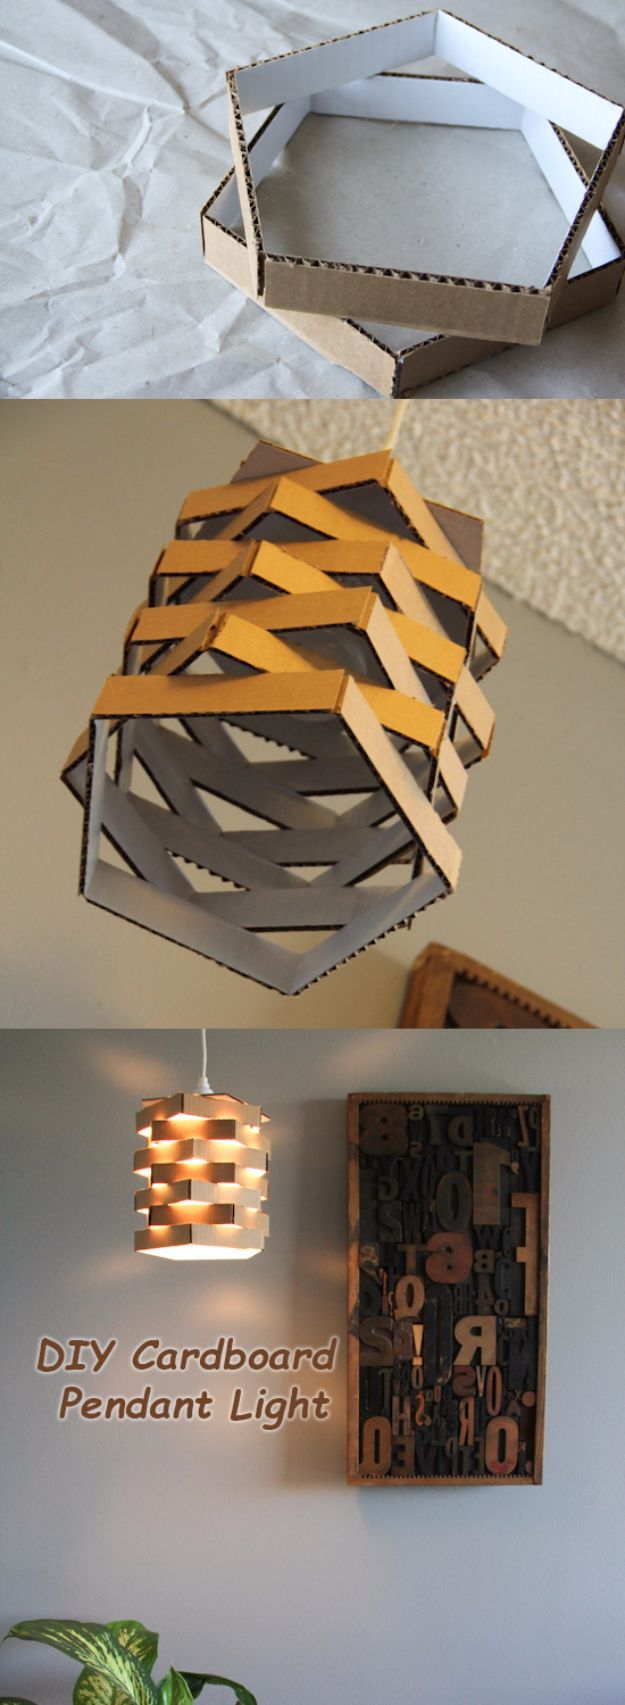 DIY Ideas With Cardboard - DIY Cardboard Pendant Light - How To Make Room Decor Crafts for Kids - Easy and Crafty Storage Ideas For Room - Toilet Paper Roll Projects Tutorials - Fun Furniture Ideas with Cardboard - Cheap, Quick and Easy Wall Decorations http://diyjoy.com/diy-ideas-cardboard